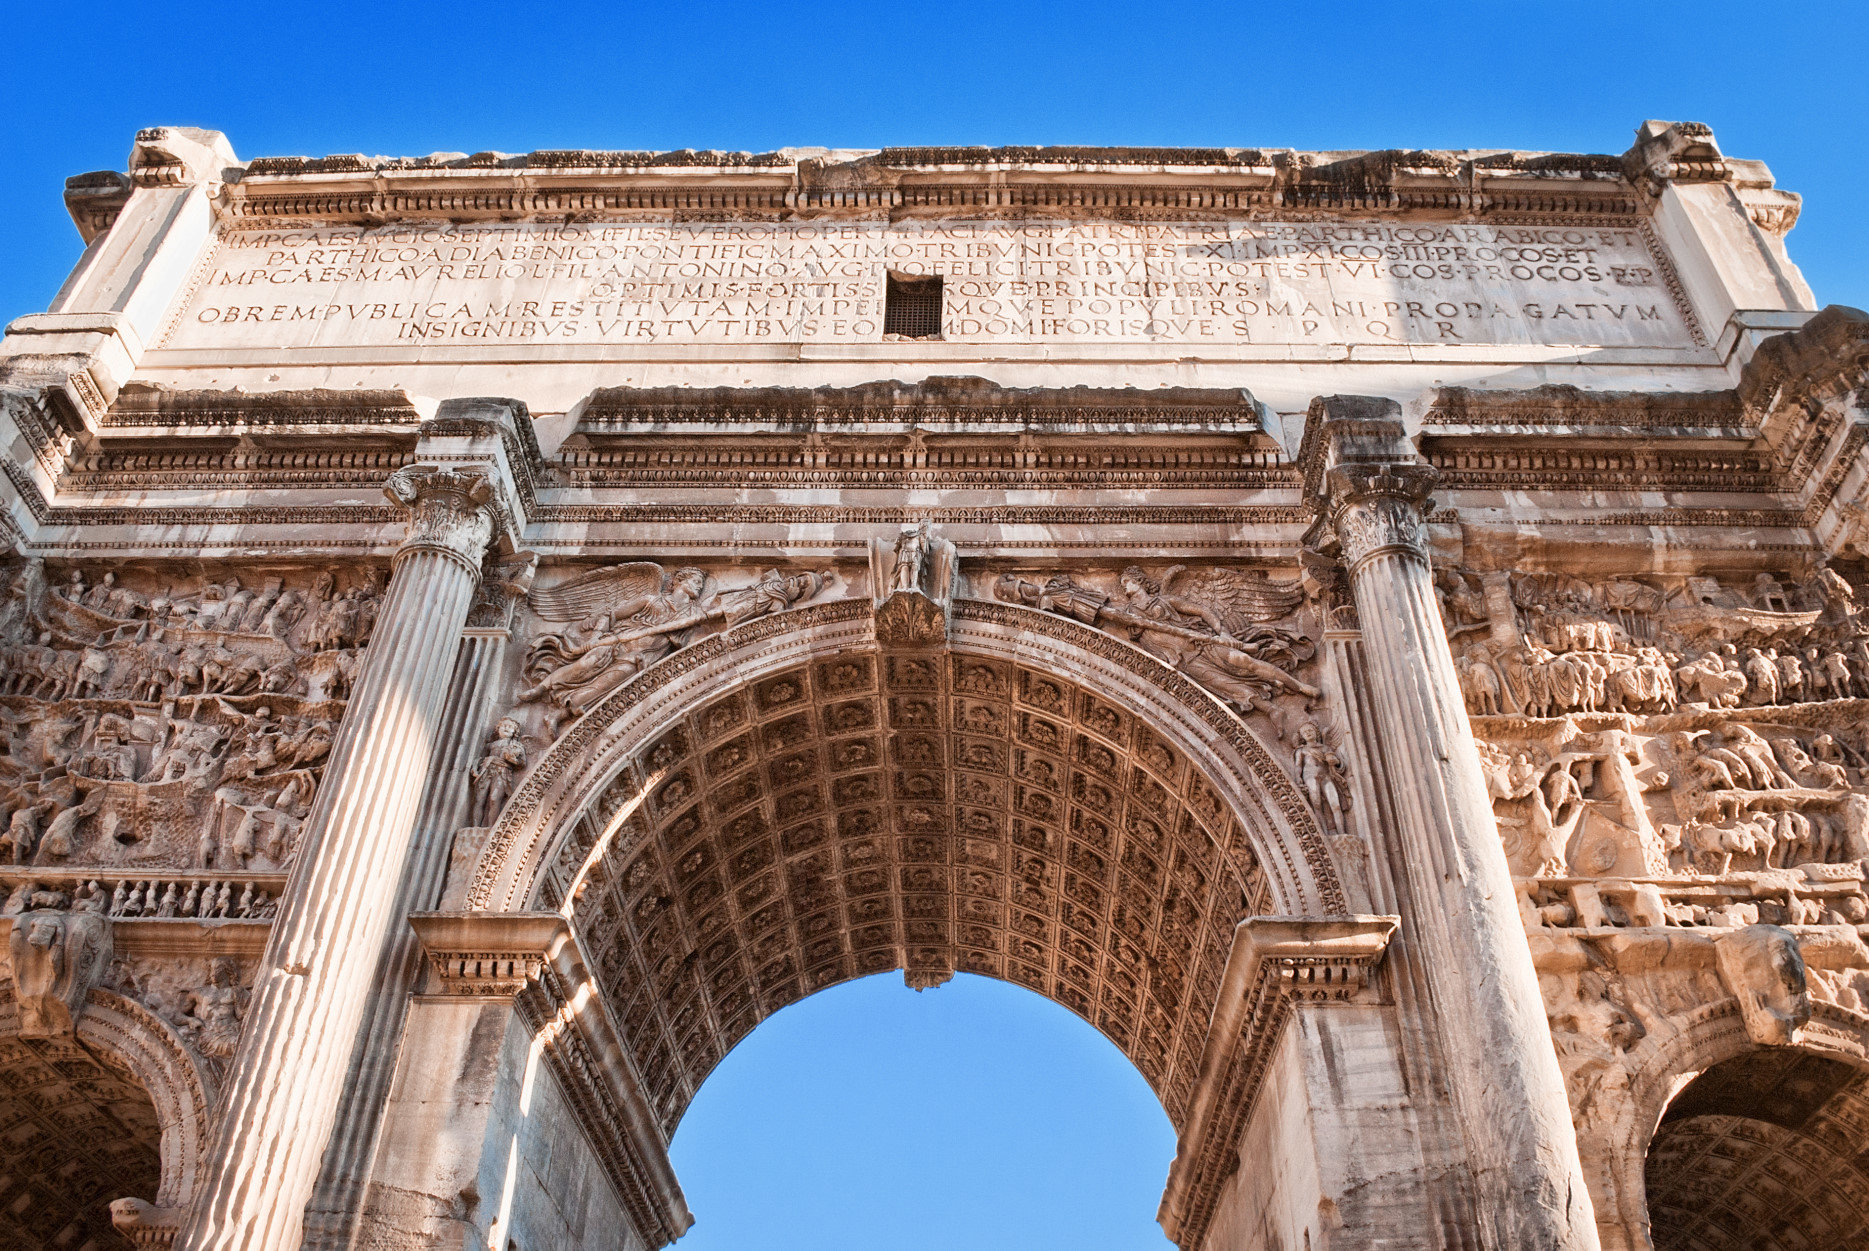 The Arch of Titus at the Forum ruins in Rome, Italy.